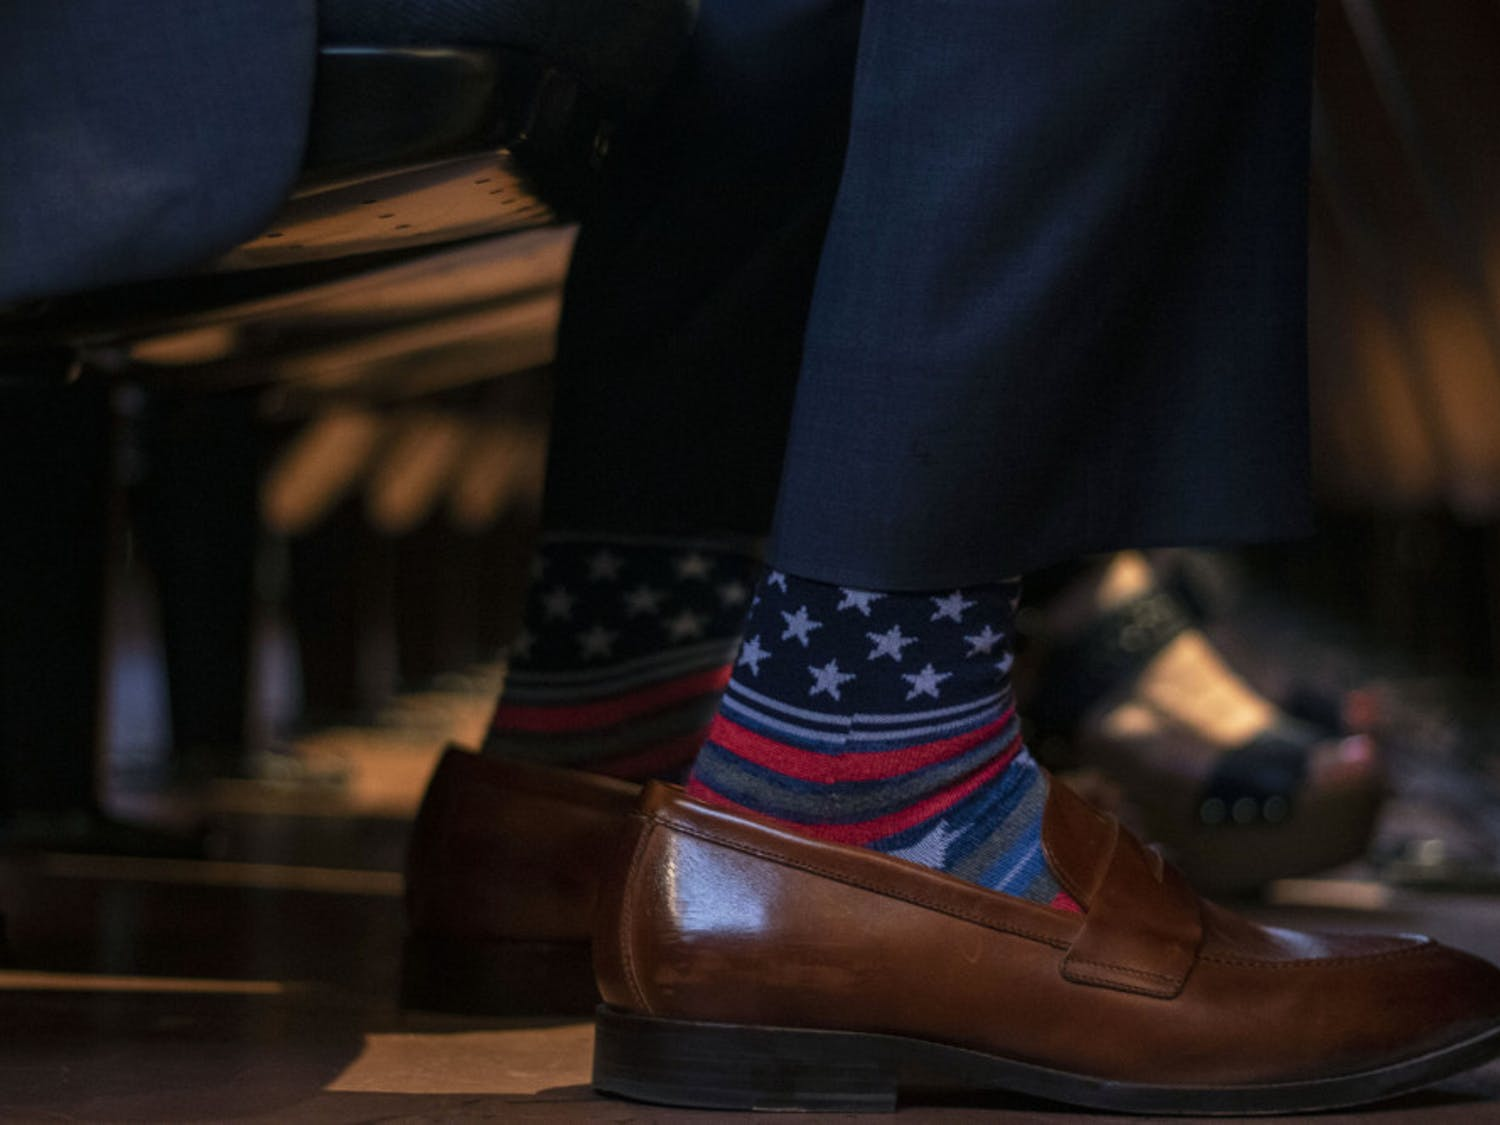 Senator Keith Perry wears socks with stars and stripes Thursday while waiting for Donald Trump Jr. to speak.